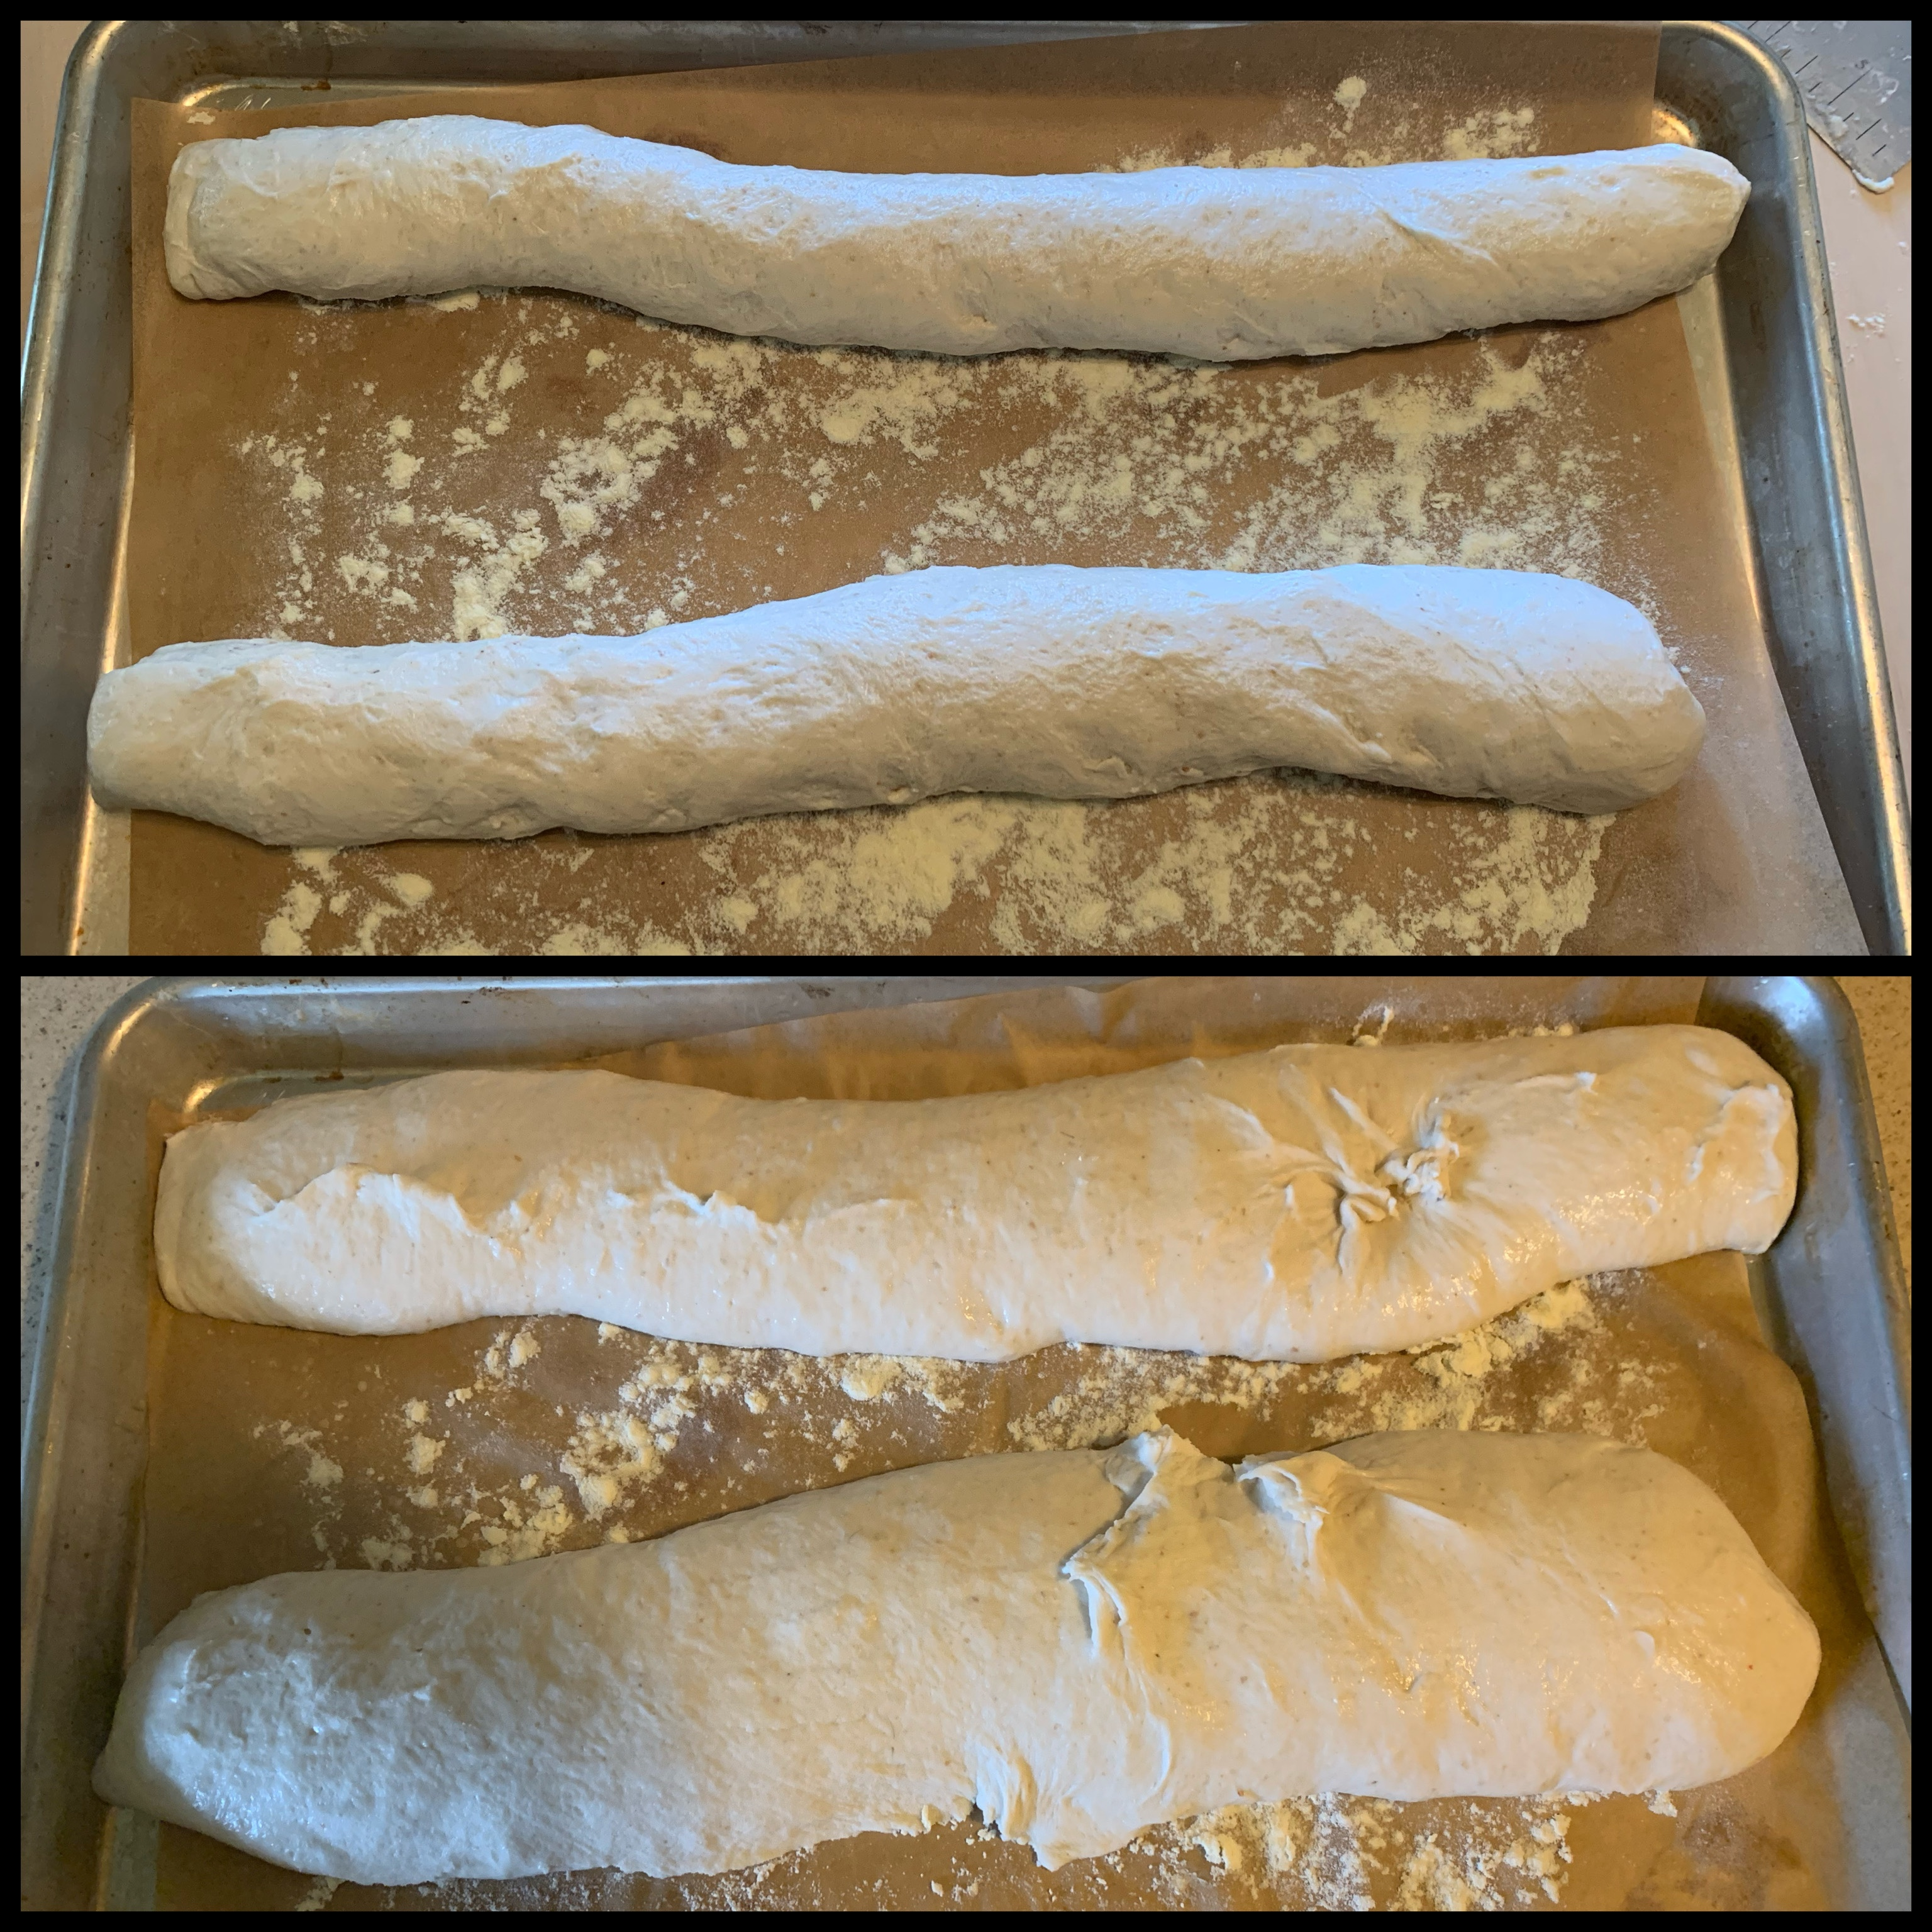 Top: rolls of unproofed dough on floured parchment paper on a baking sheet. Bottom: same set up, but the dough is expanded after proofing. Also, each roll has bits of pulled up and broken dough.